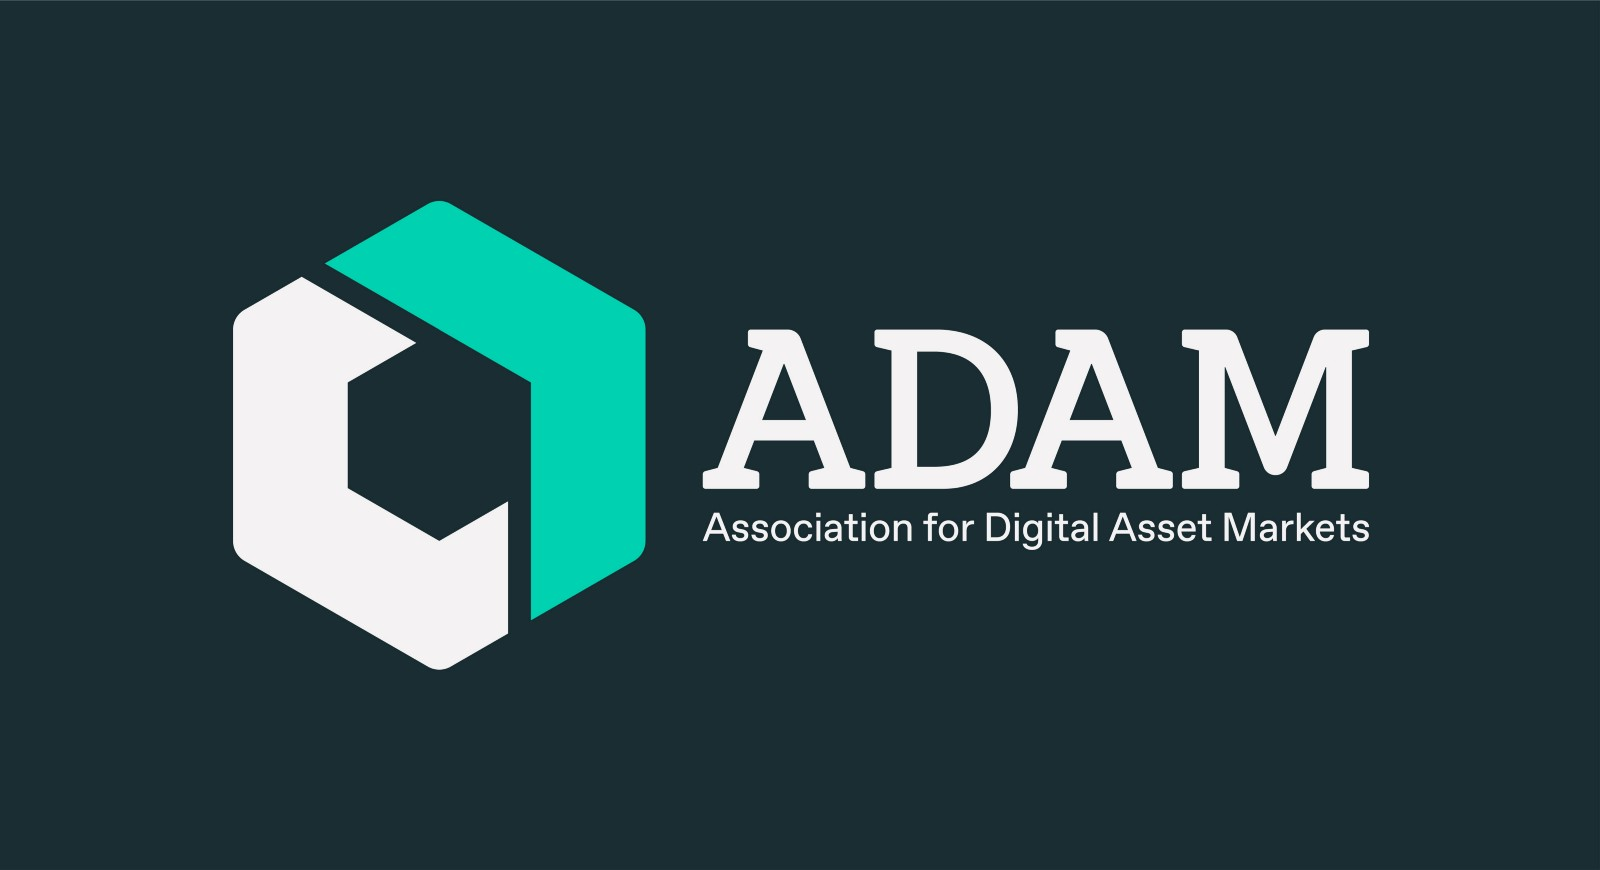 Digital Asset Markets